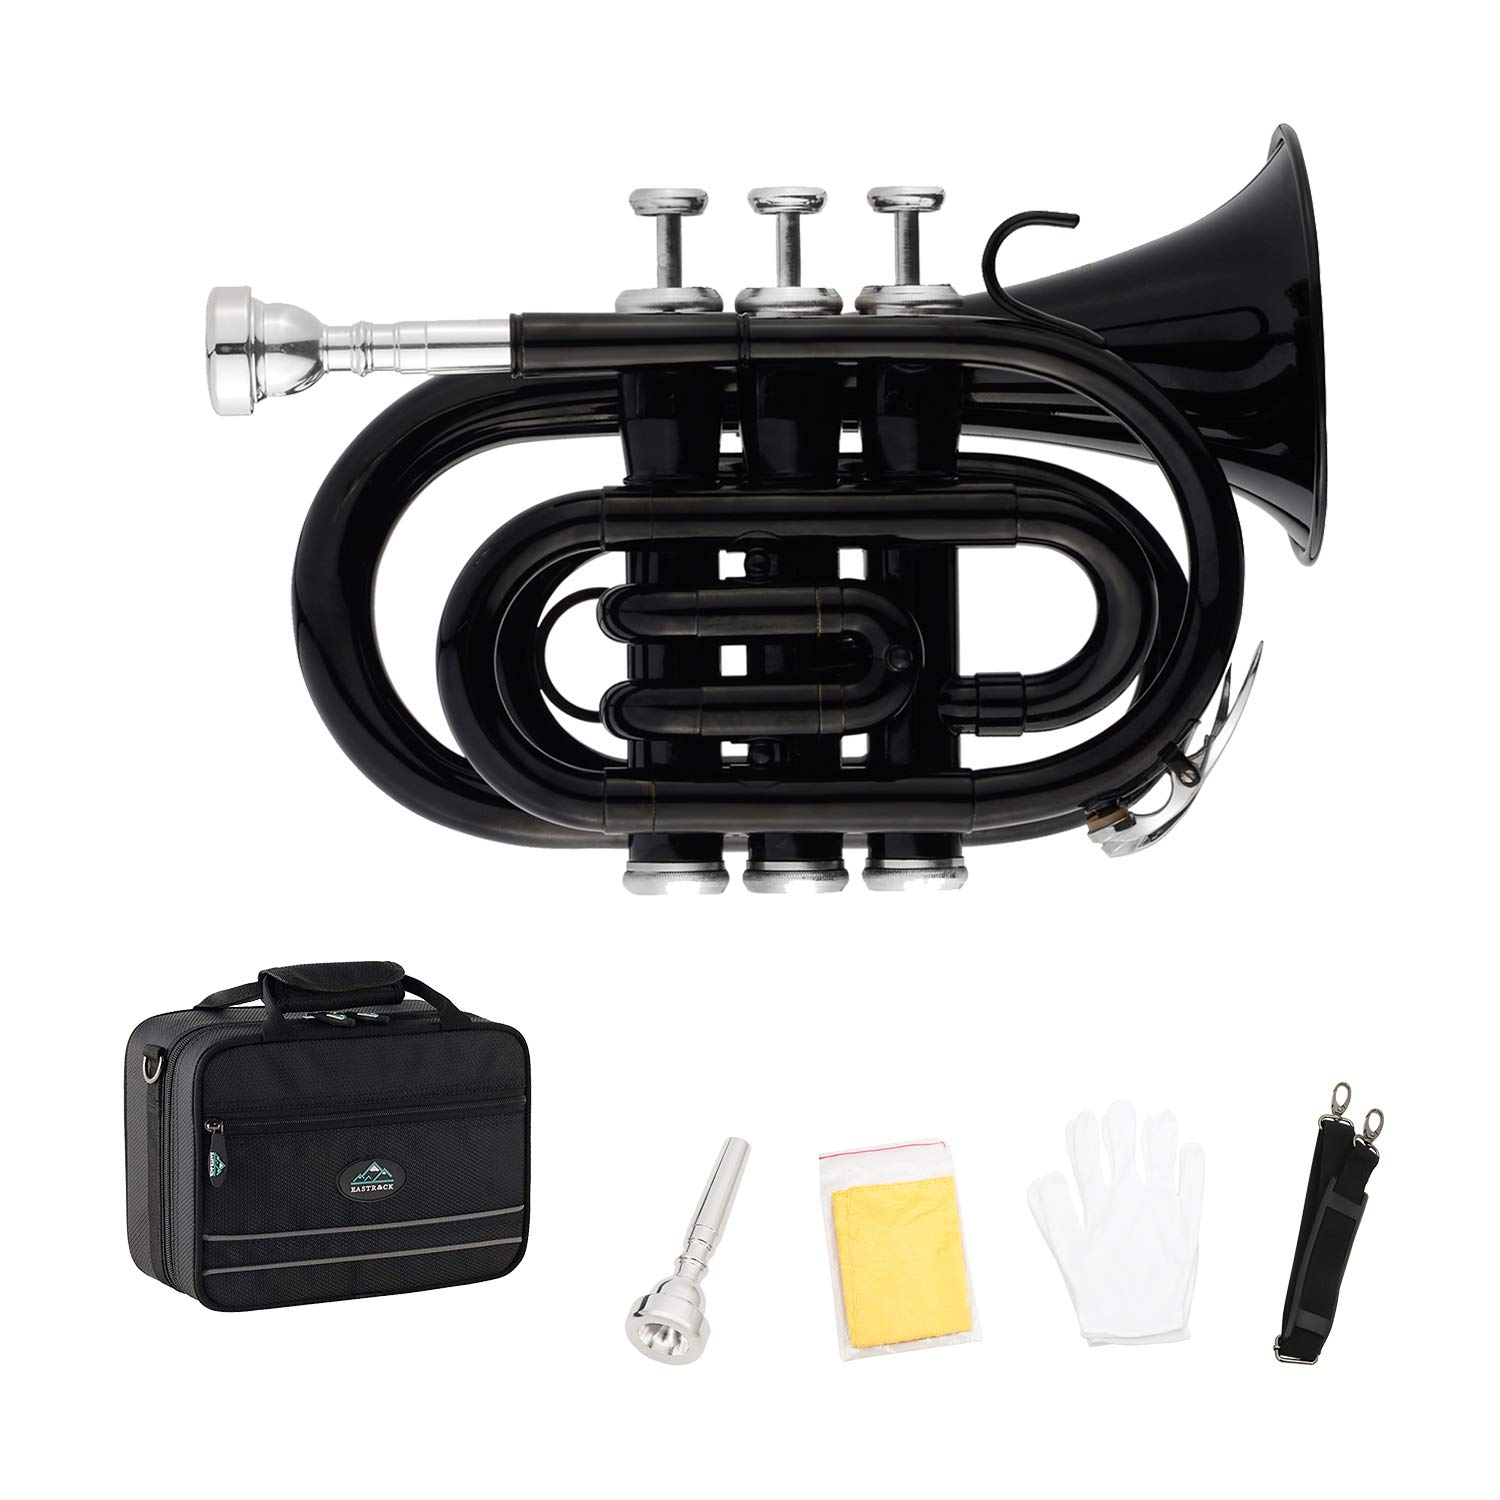 EastRock Pocket Trumpet Black Laquer Brass Bb Pocket Trumpet for Beginners or Students, Intermediate Players with Standard 7C Trumpet Mouthpiece,Hard Case,Strap,White Gloves&Cleaning Cloth by EASTROCK